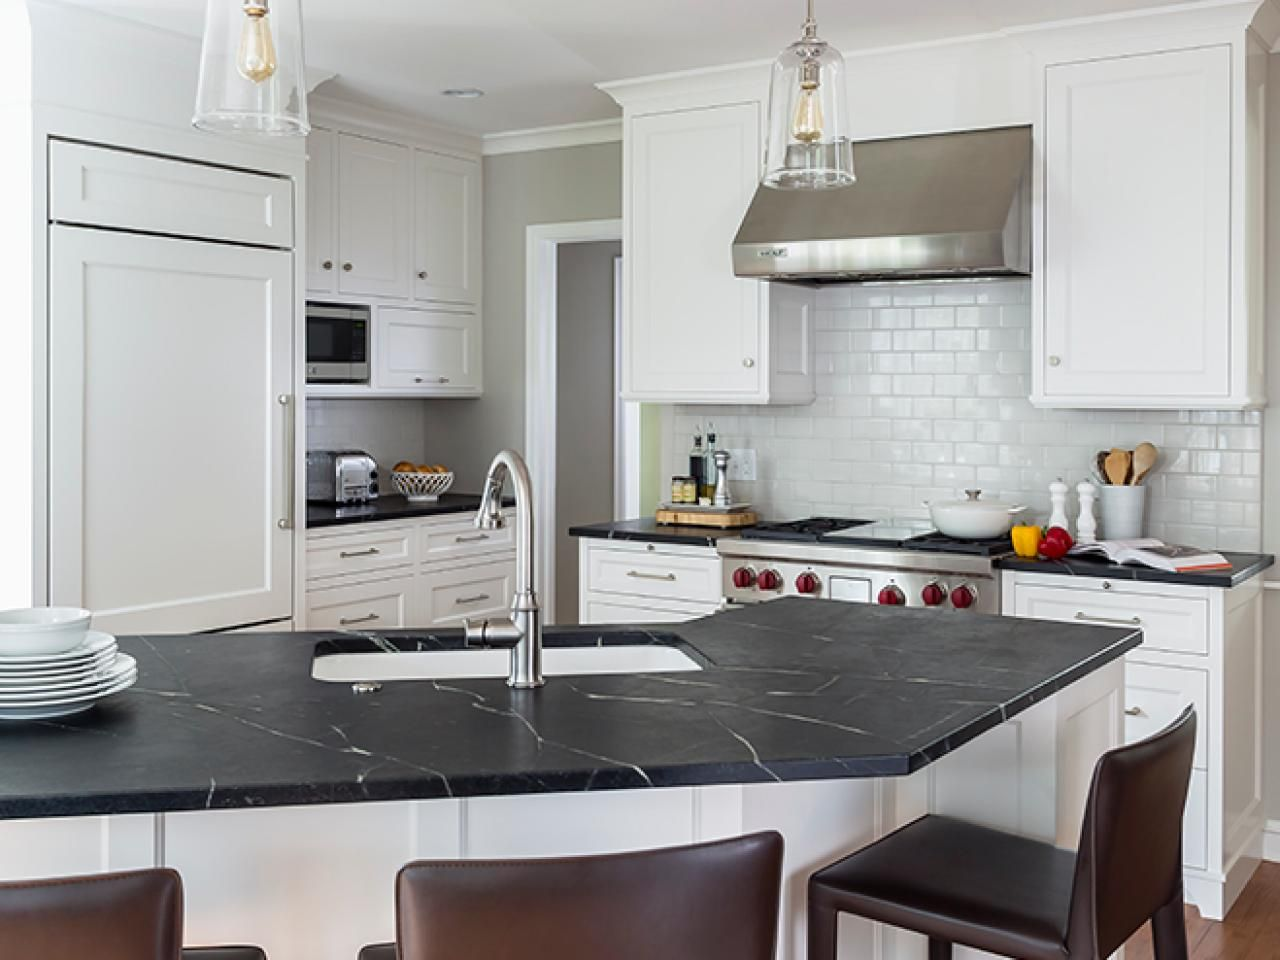 2015 NKBA People's Pick Best Kitchen Subway tile